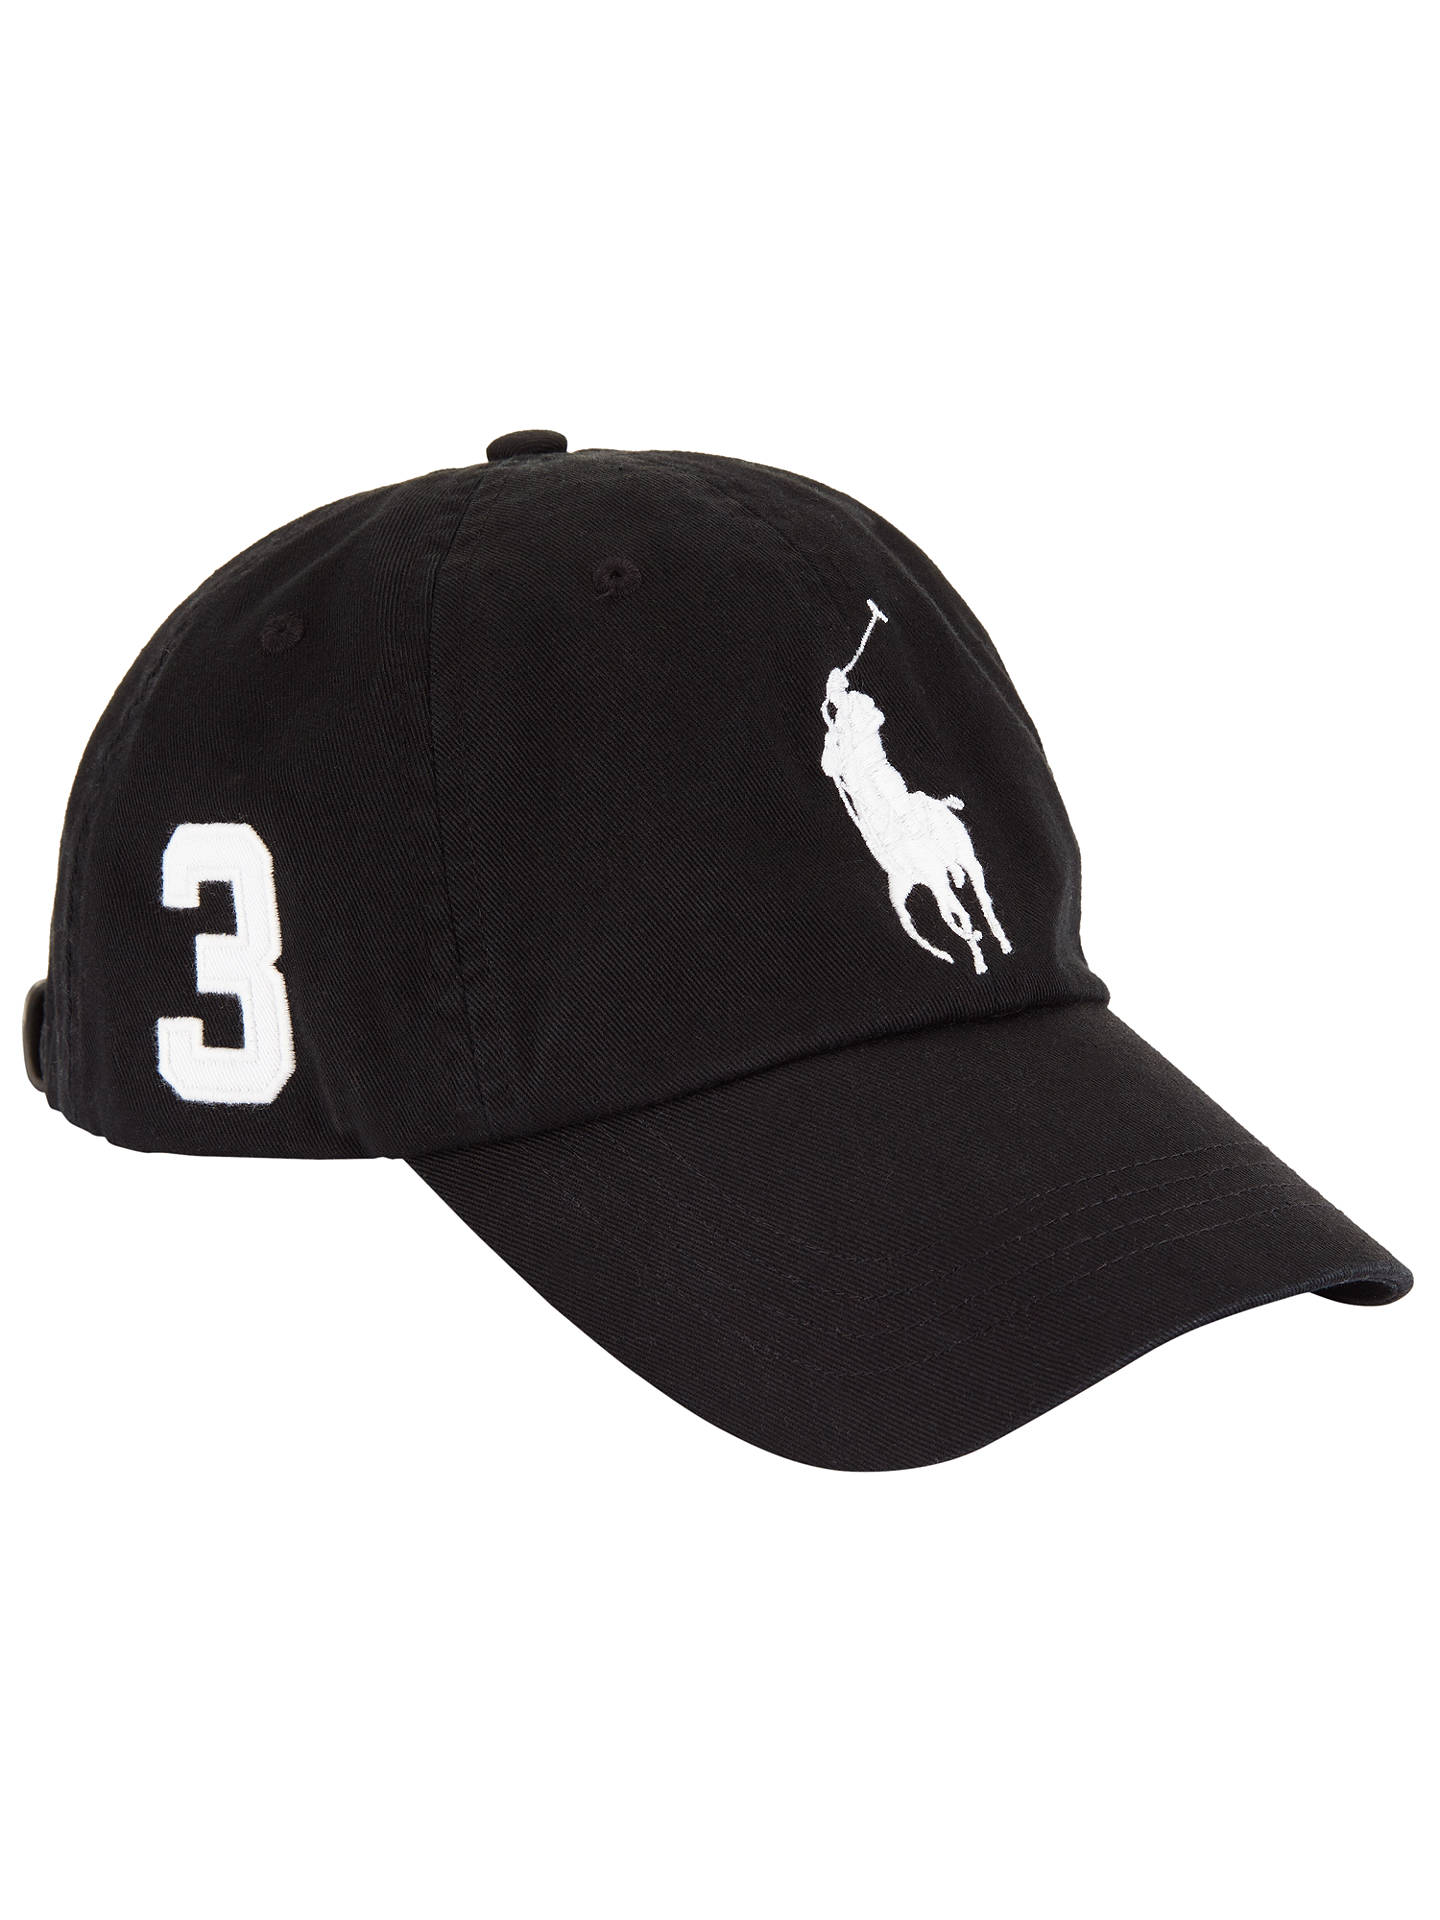 ad2648c0986aaf Buy Polo Ralph Lauren Big Pony Chino Baseball Cap, One Size, Black Online  at ...